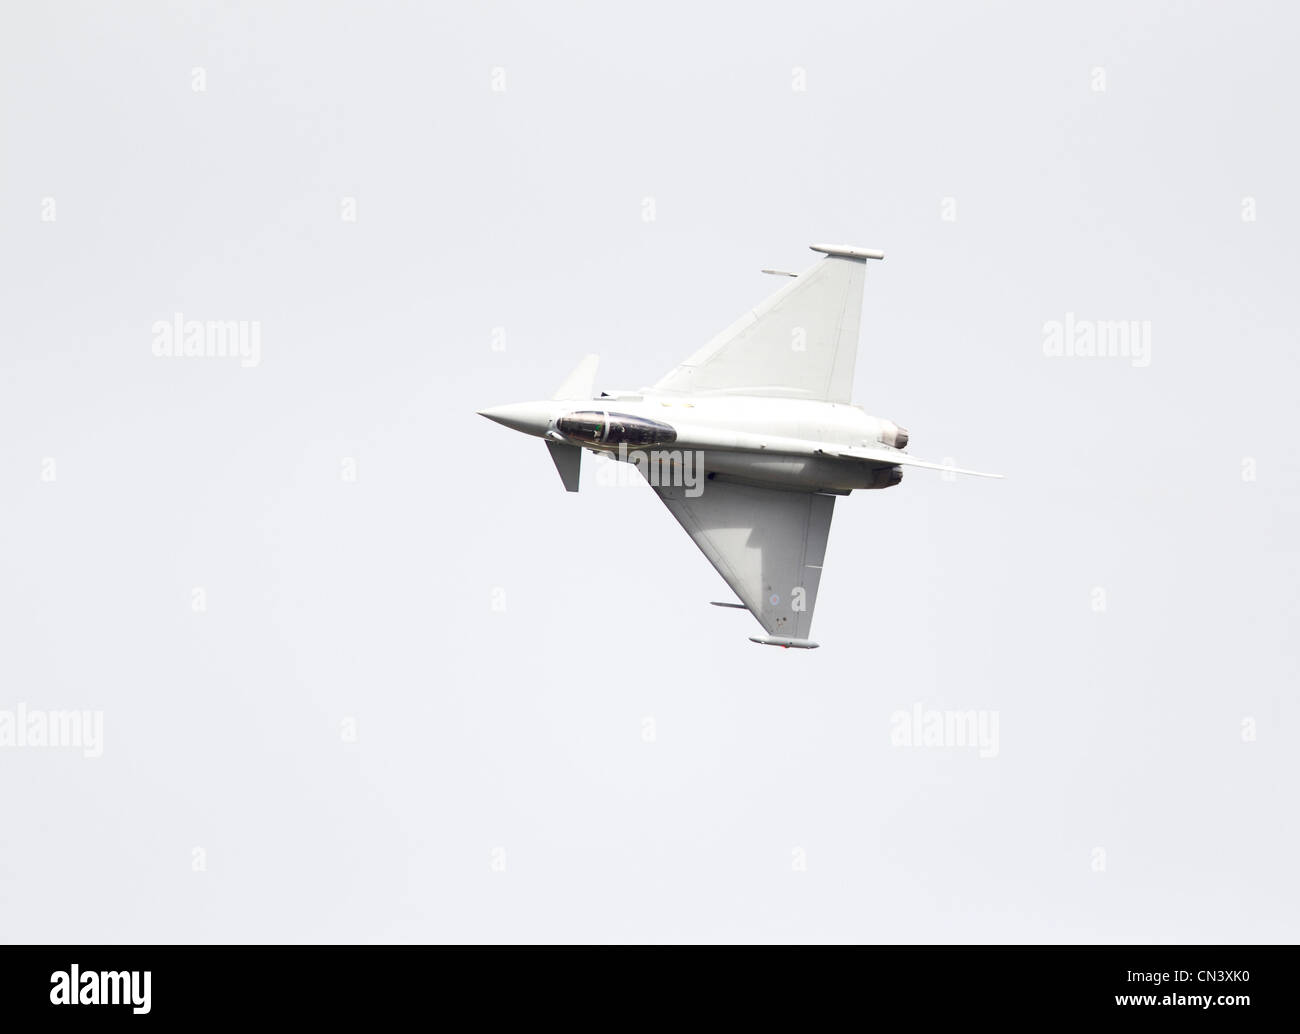 Eurofighter EF-2000 Typhoon FGR4 Royal Air Force ZJ923. Eurofighter Typhoon is a twin-engine, canard-delta wing, Stock Photo